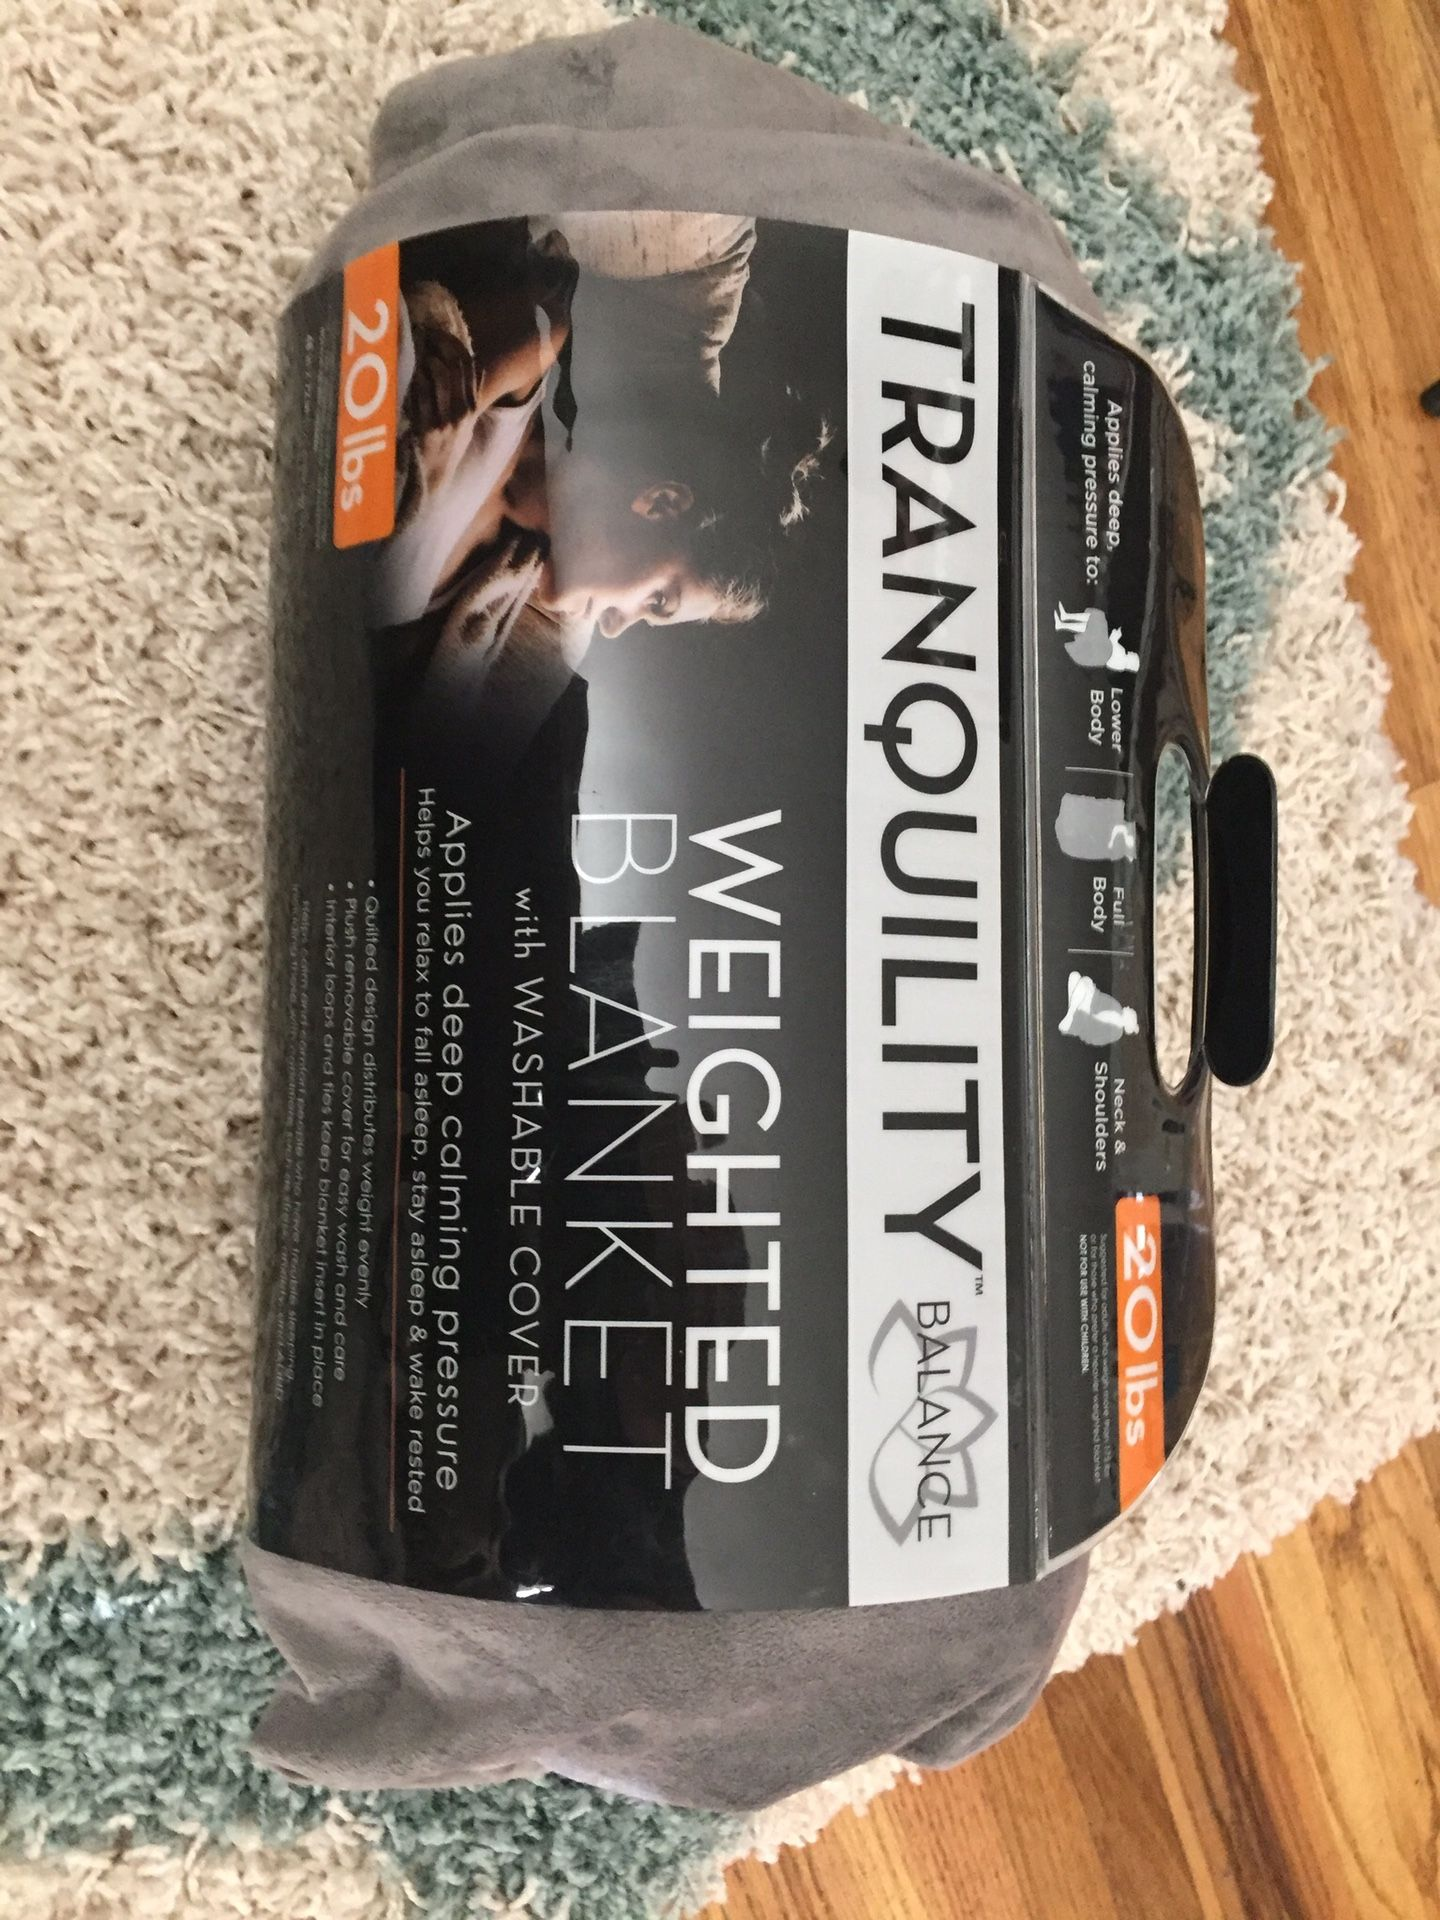 Weighted Blanket - 20lbs - Brand New